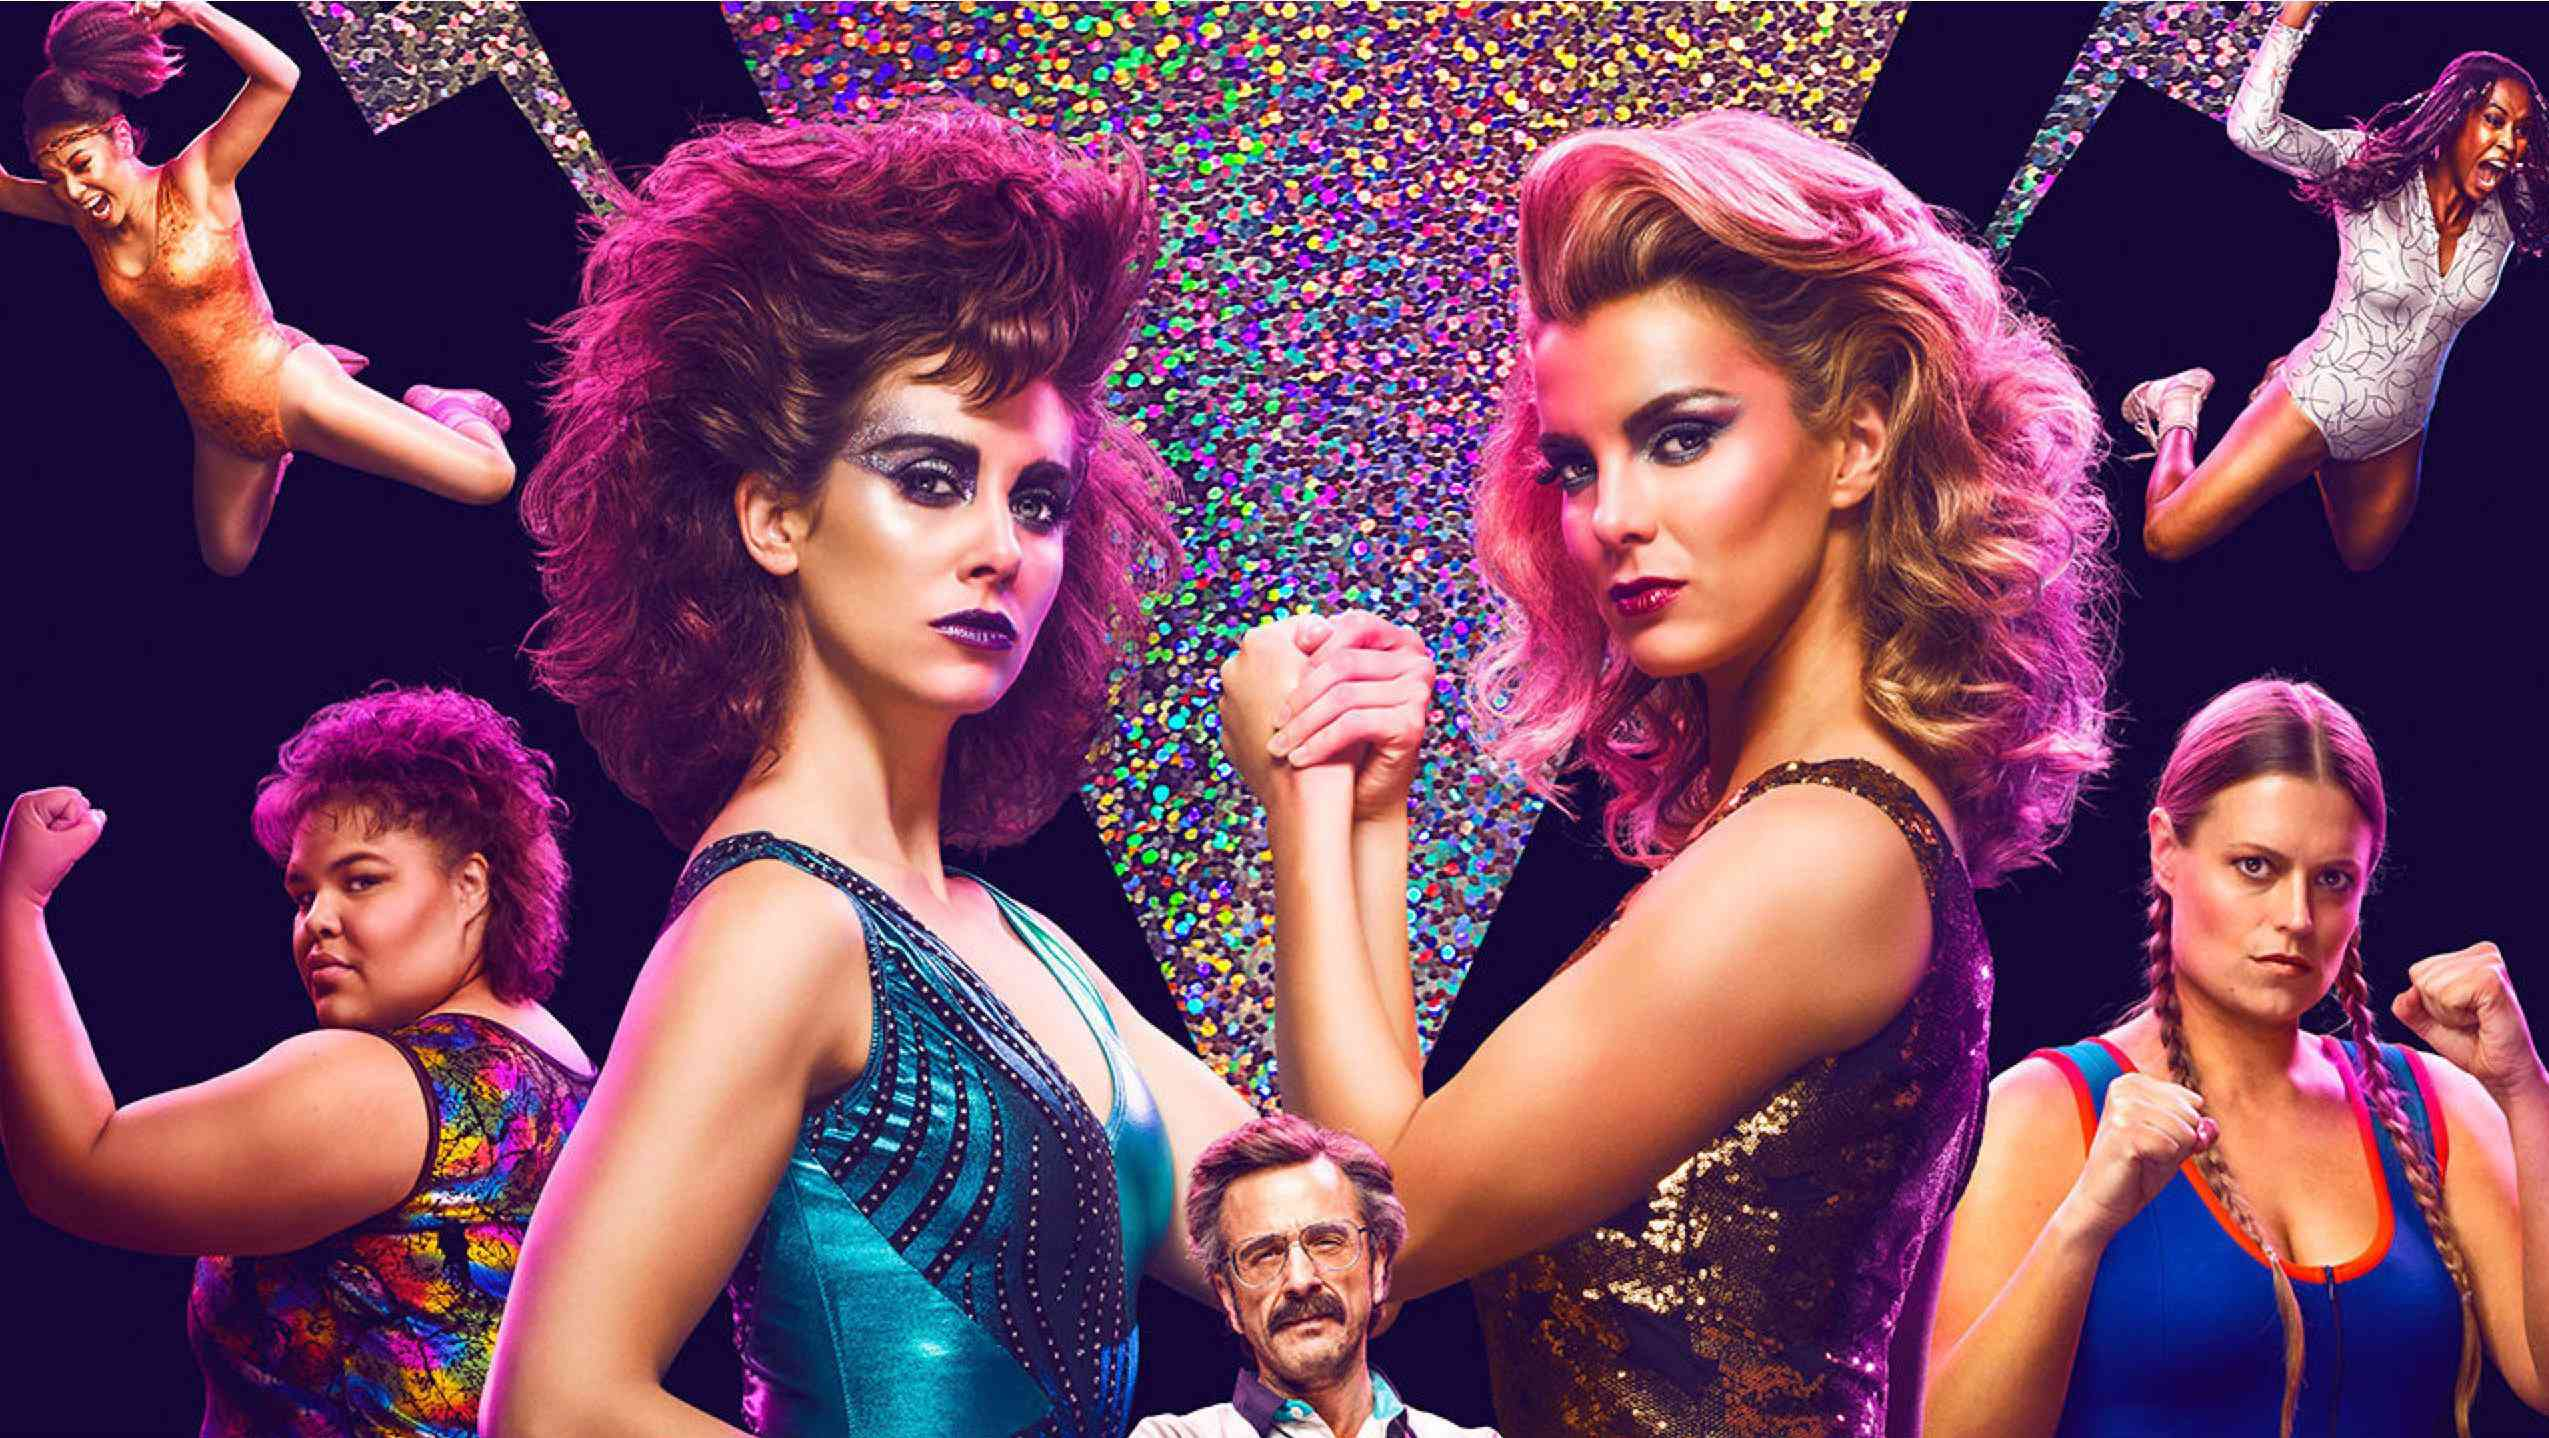 Allison Brie and Betty Gilpin in GLOW